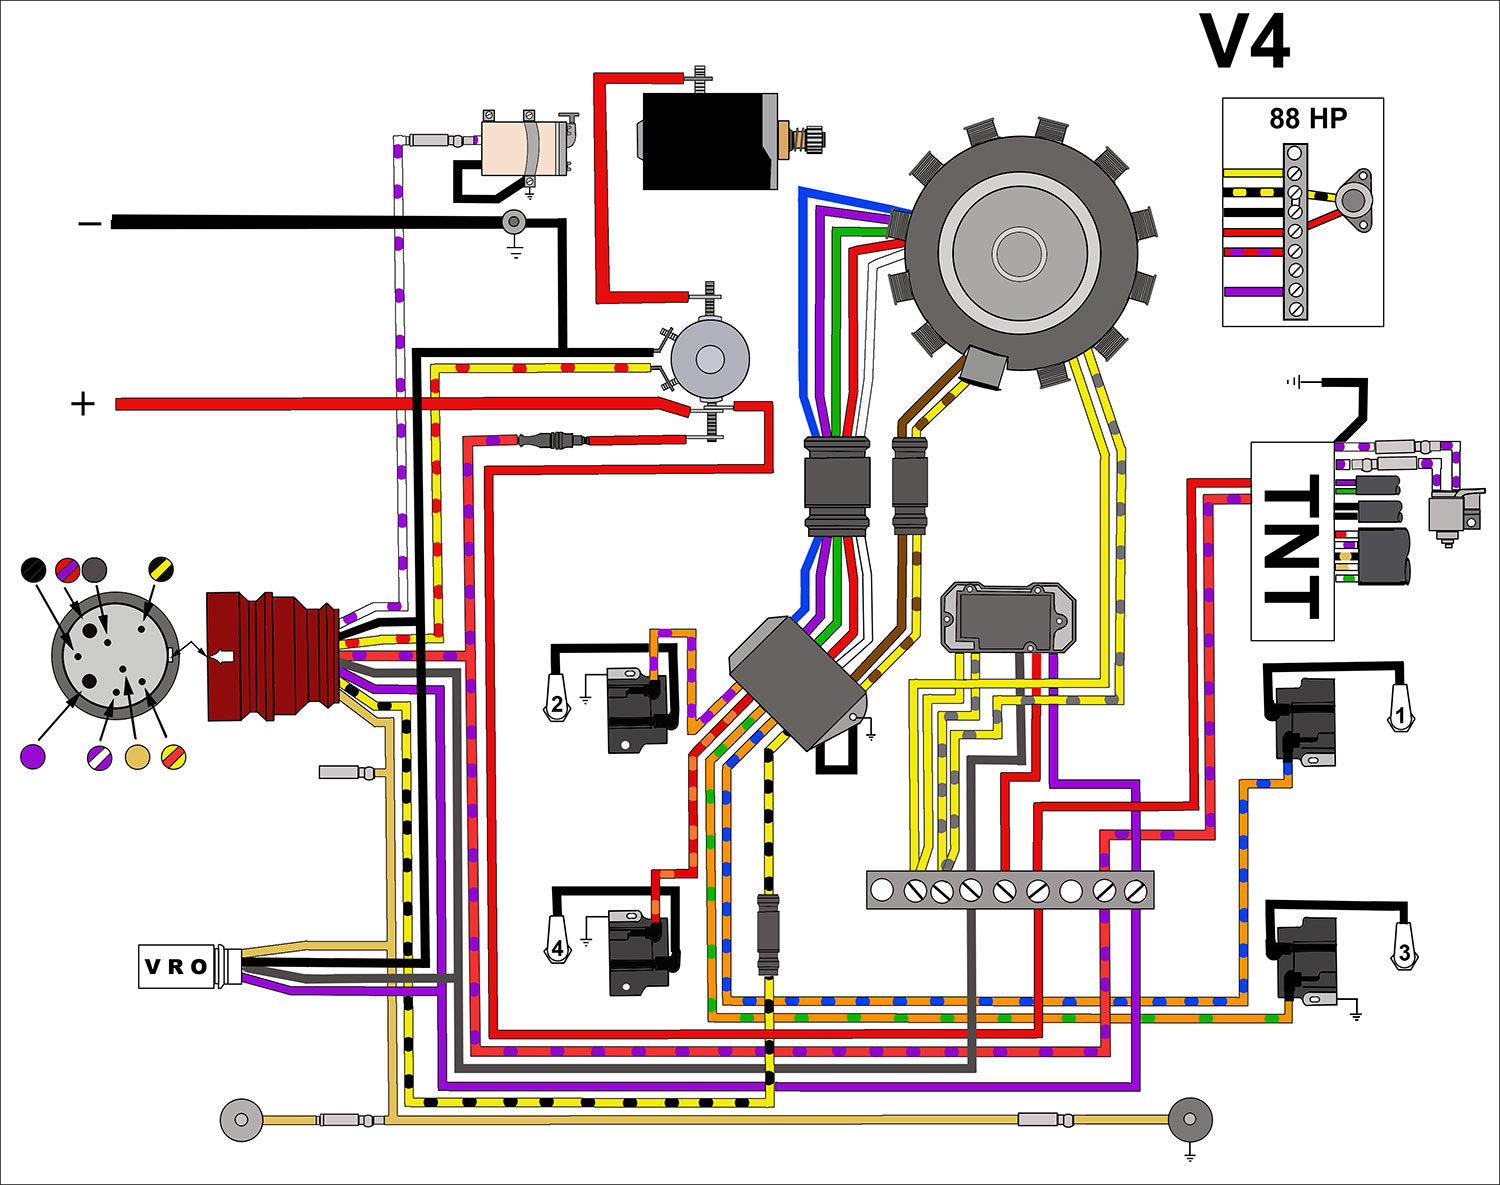 johnson 115 hp trim motor wiring diagram wiring schematic diagram rh  asparklingjourney com 50 HP Mercury Outboard Wiring Diagram Mercury  Outboard Tach ...